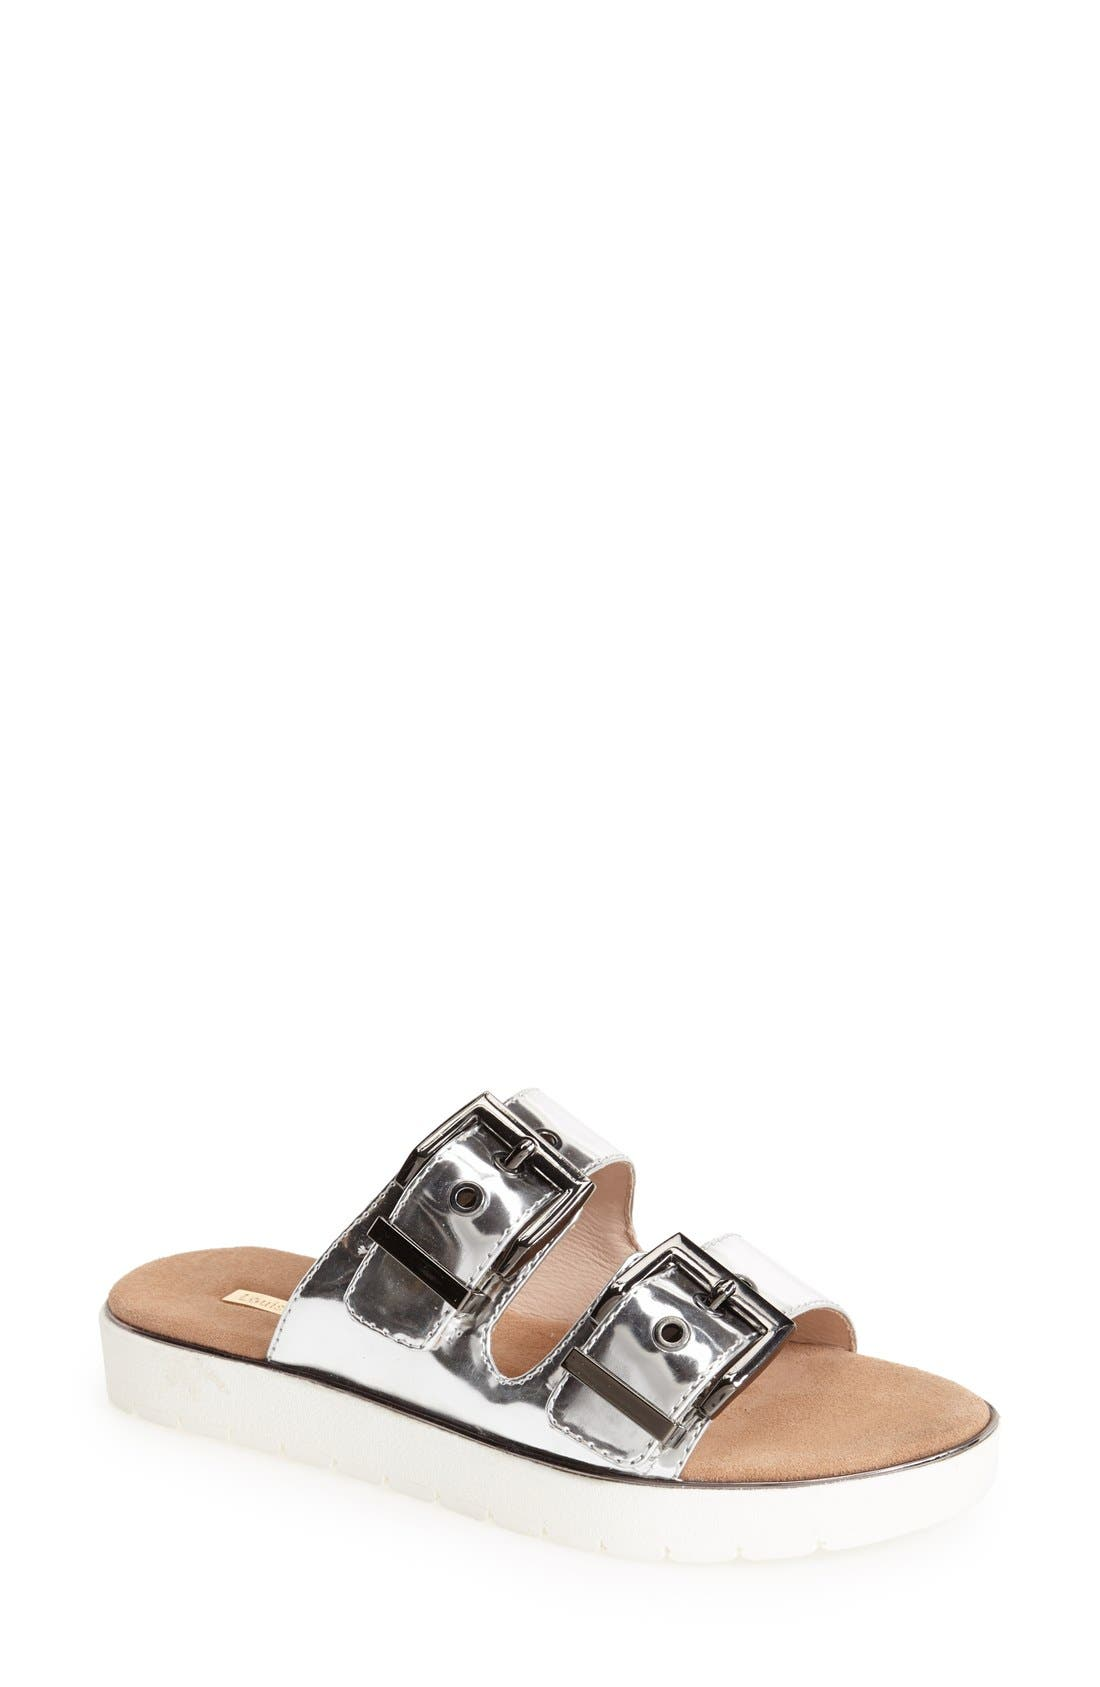 Alternate Image 1 Selected - Louise et Cie 'Lairde' Slip-On Leather Sandal (Women)